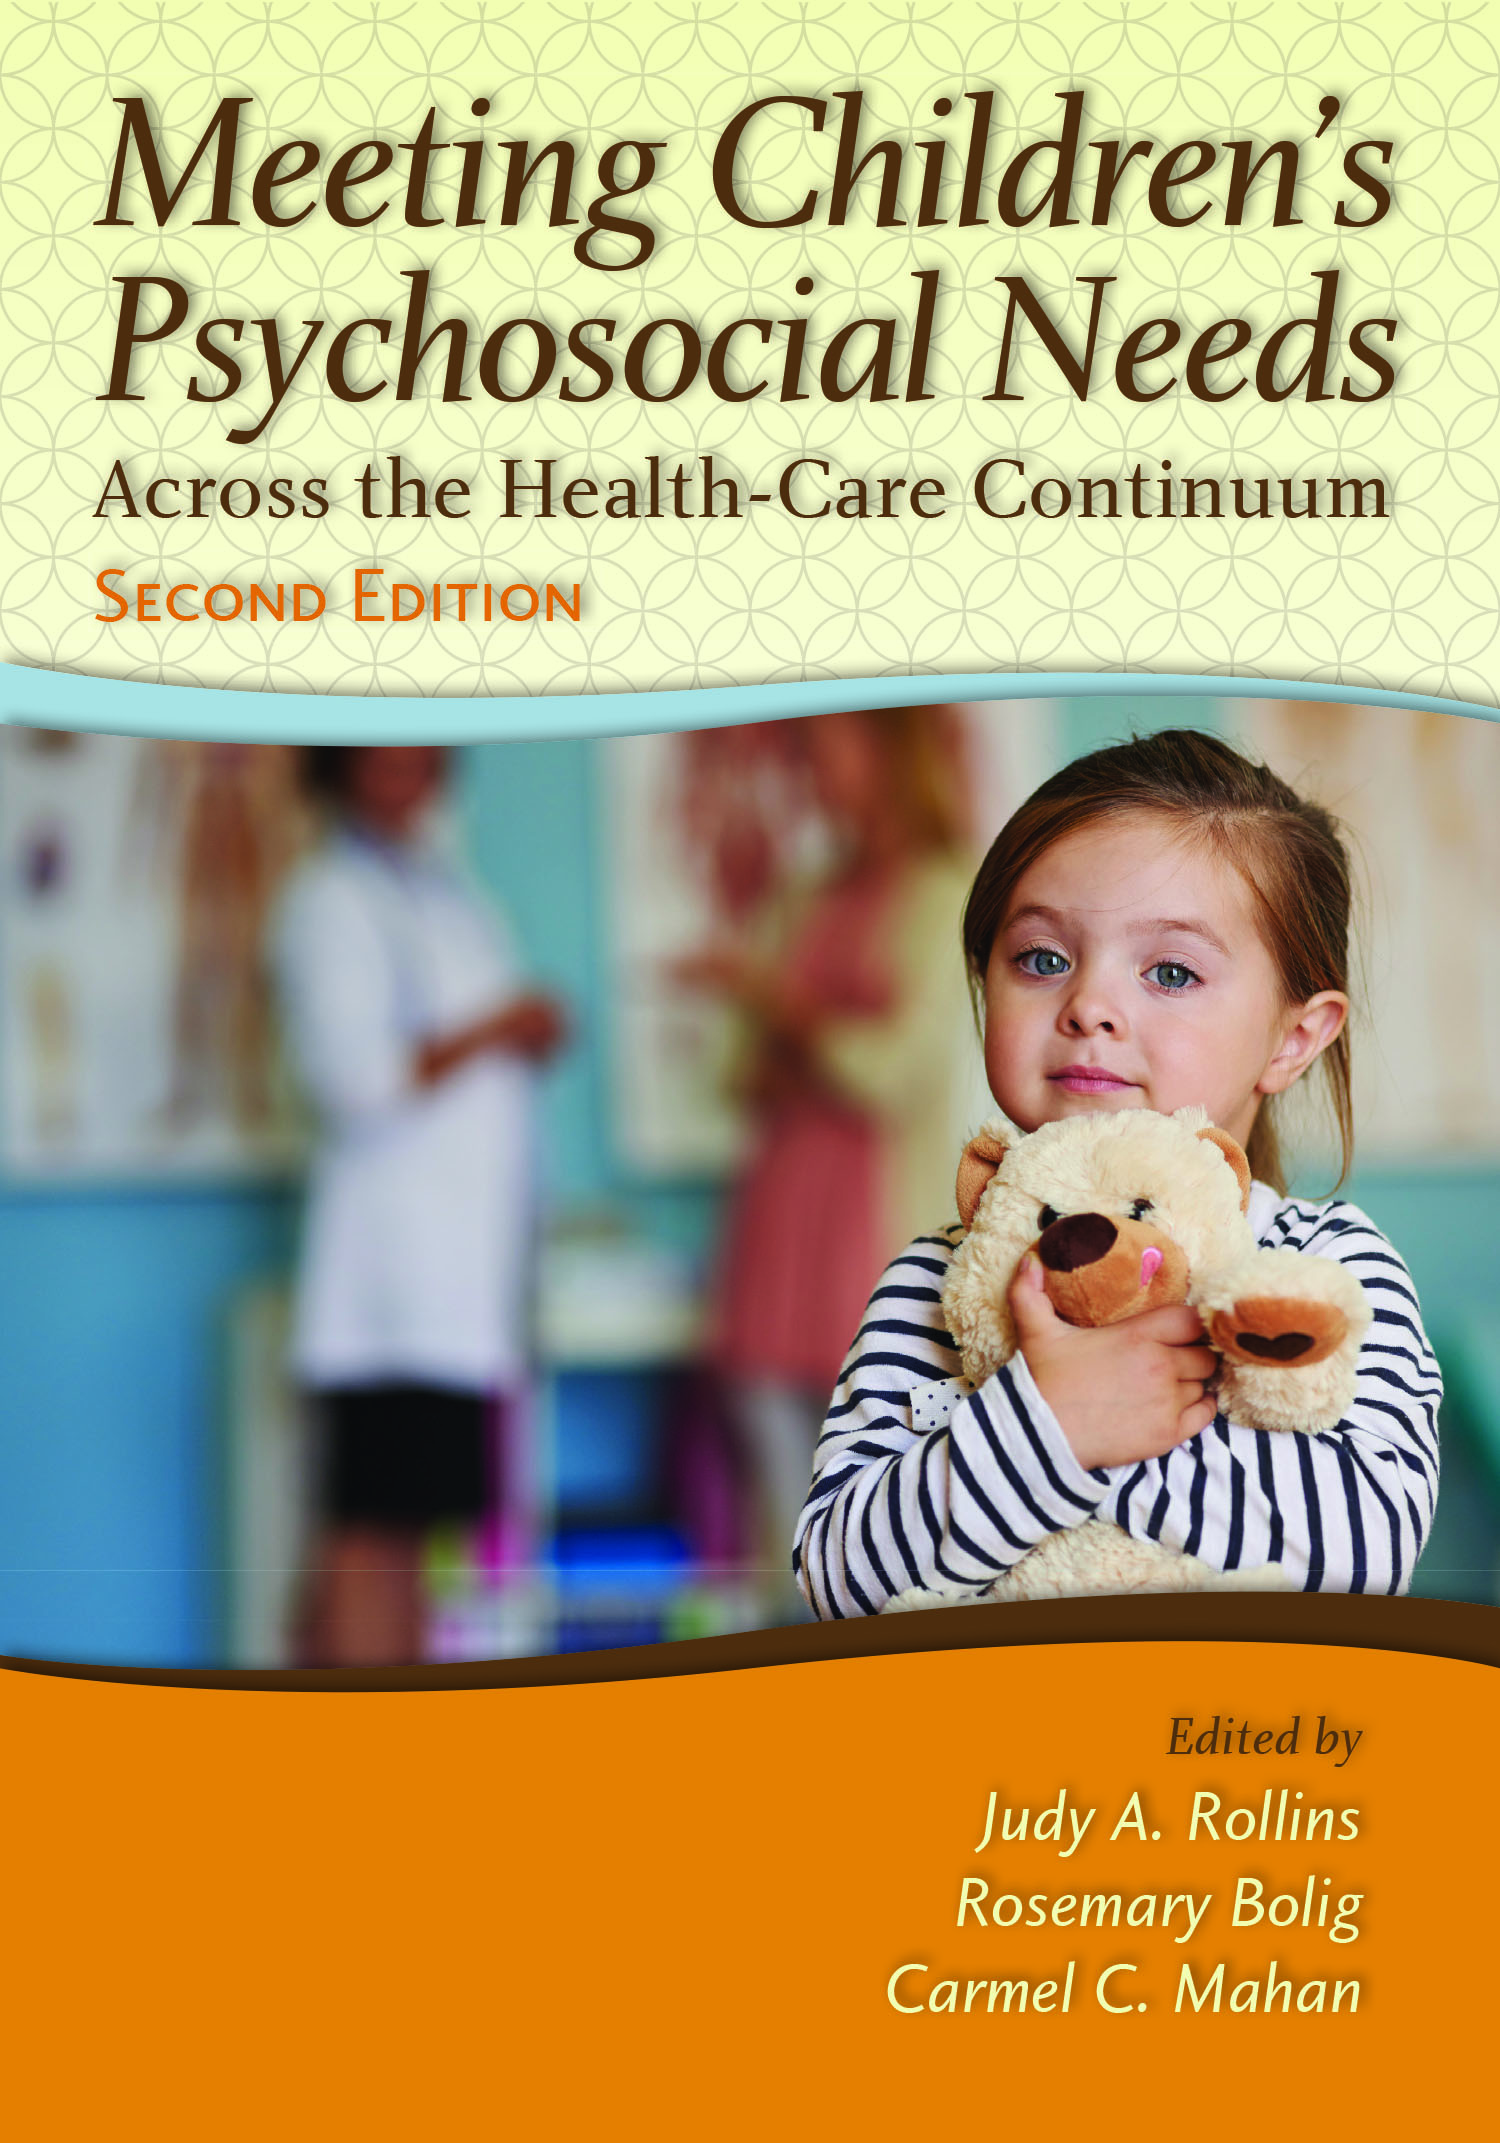 Meeting Children's Psychosocial Needs Across the Health-Care Continuum,  Second Edition captures the many developments in children's health care  since the ...